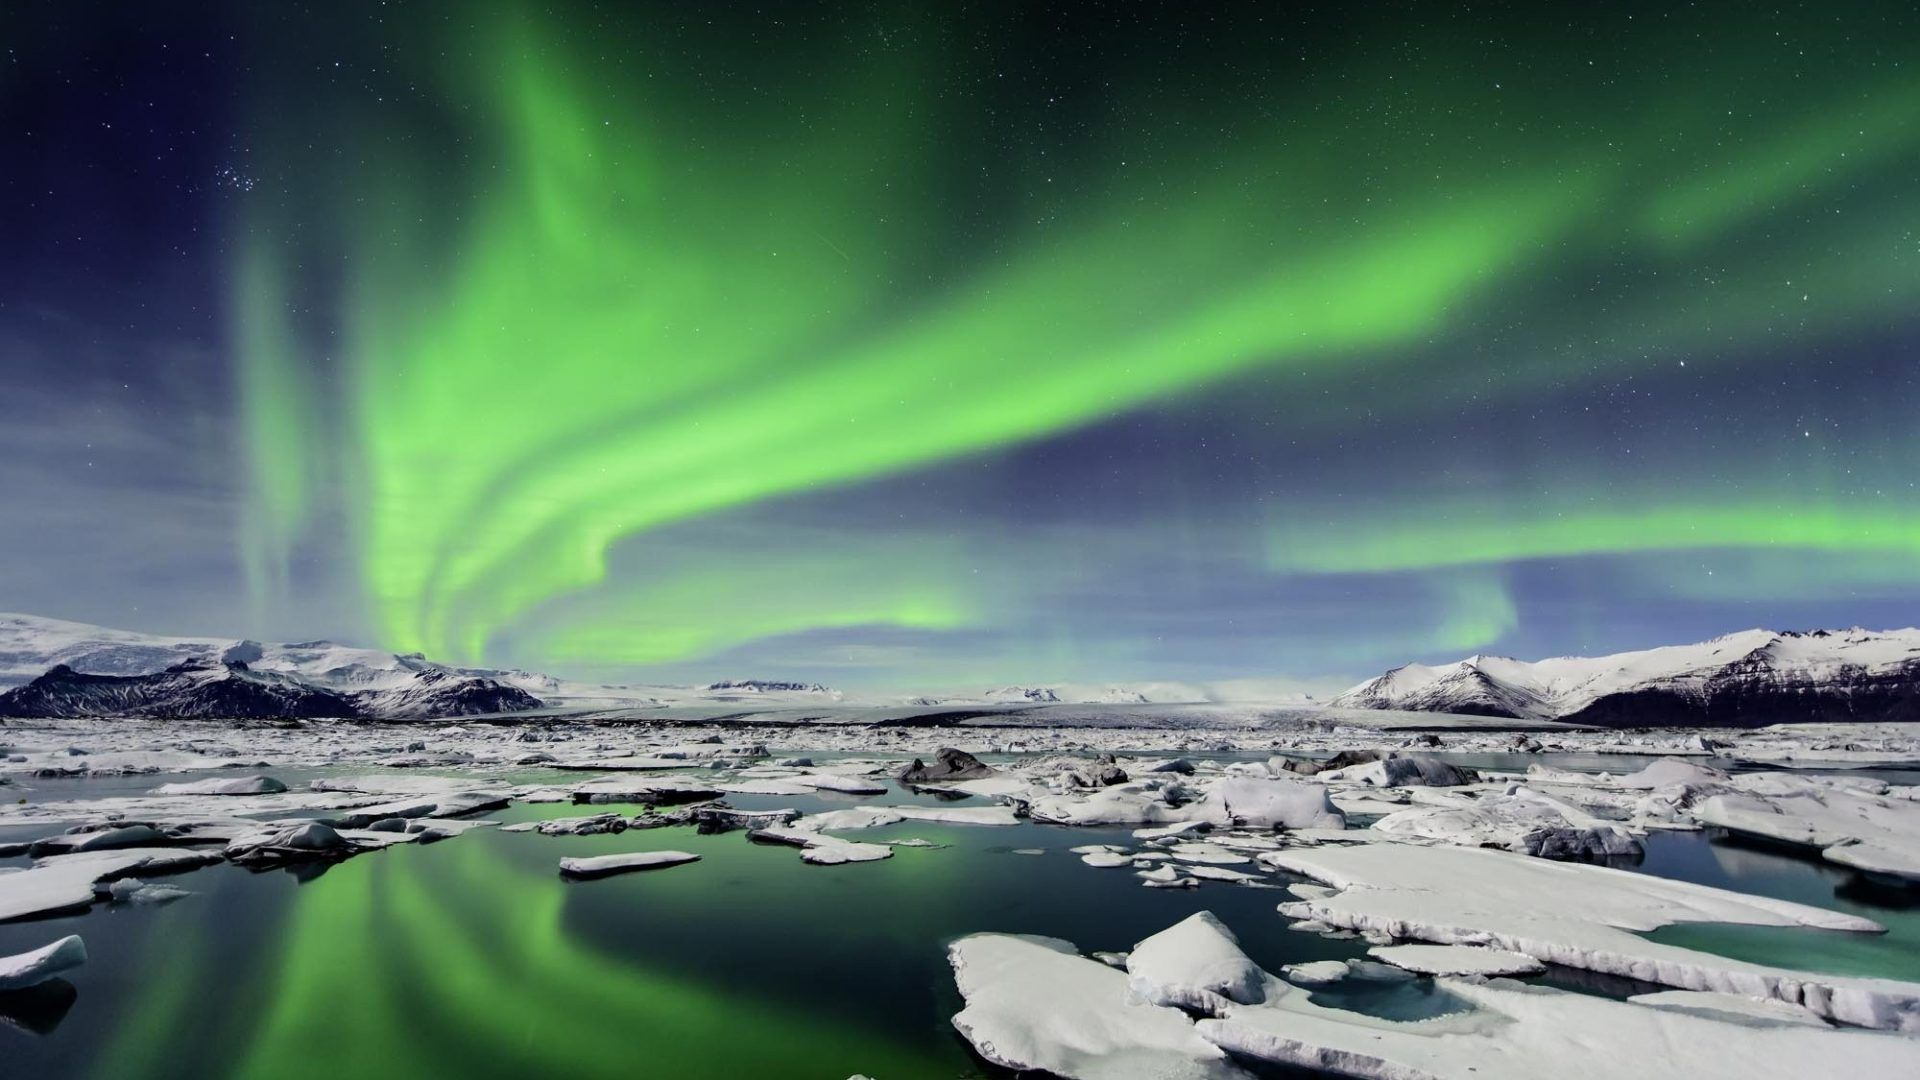 Arctic Tag Nature Ice Aurora Borealis Arctic New Wallpapers Free Download For Hd 16 9 H Northern Lights Iceland See The Northern Lights Northern Lights Tours